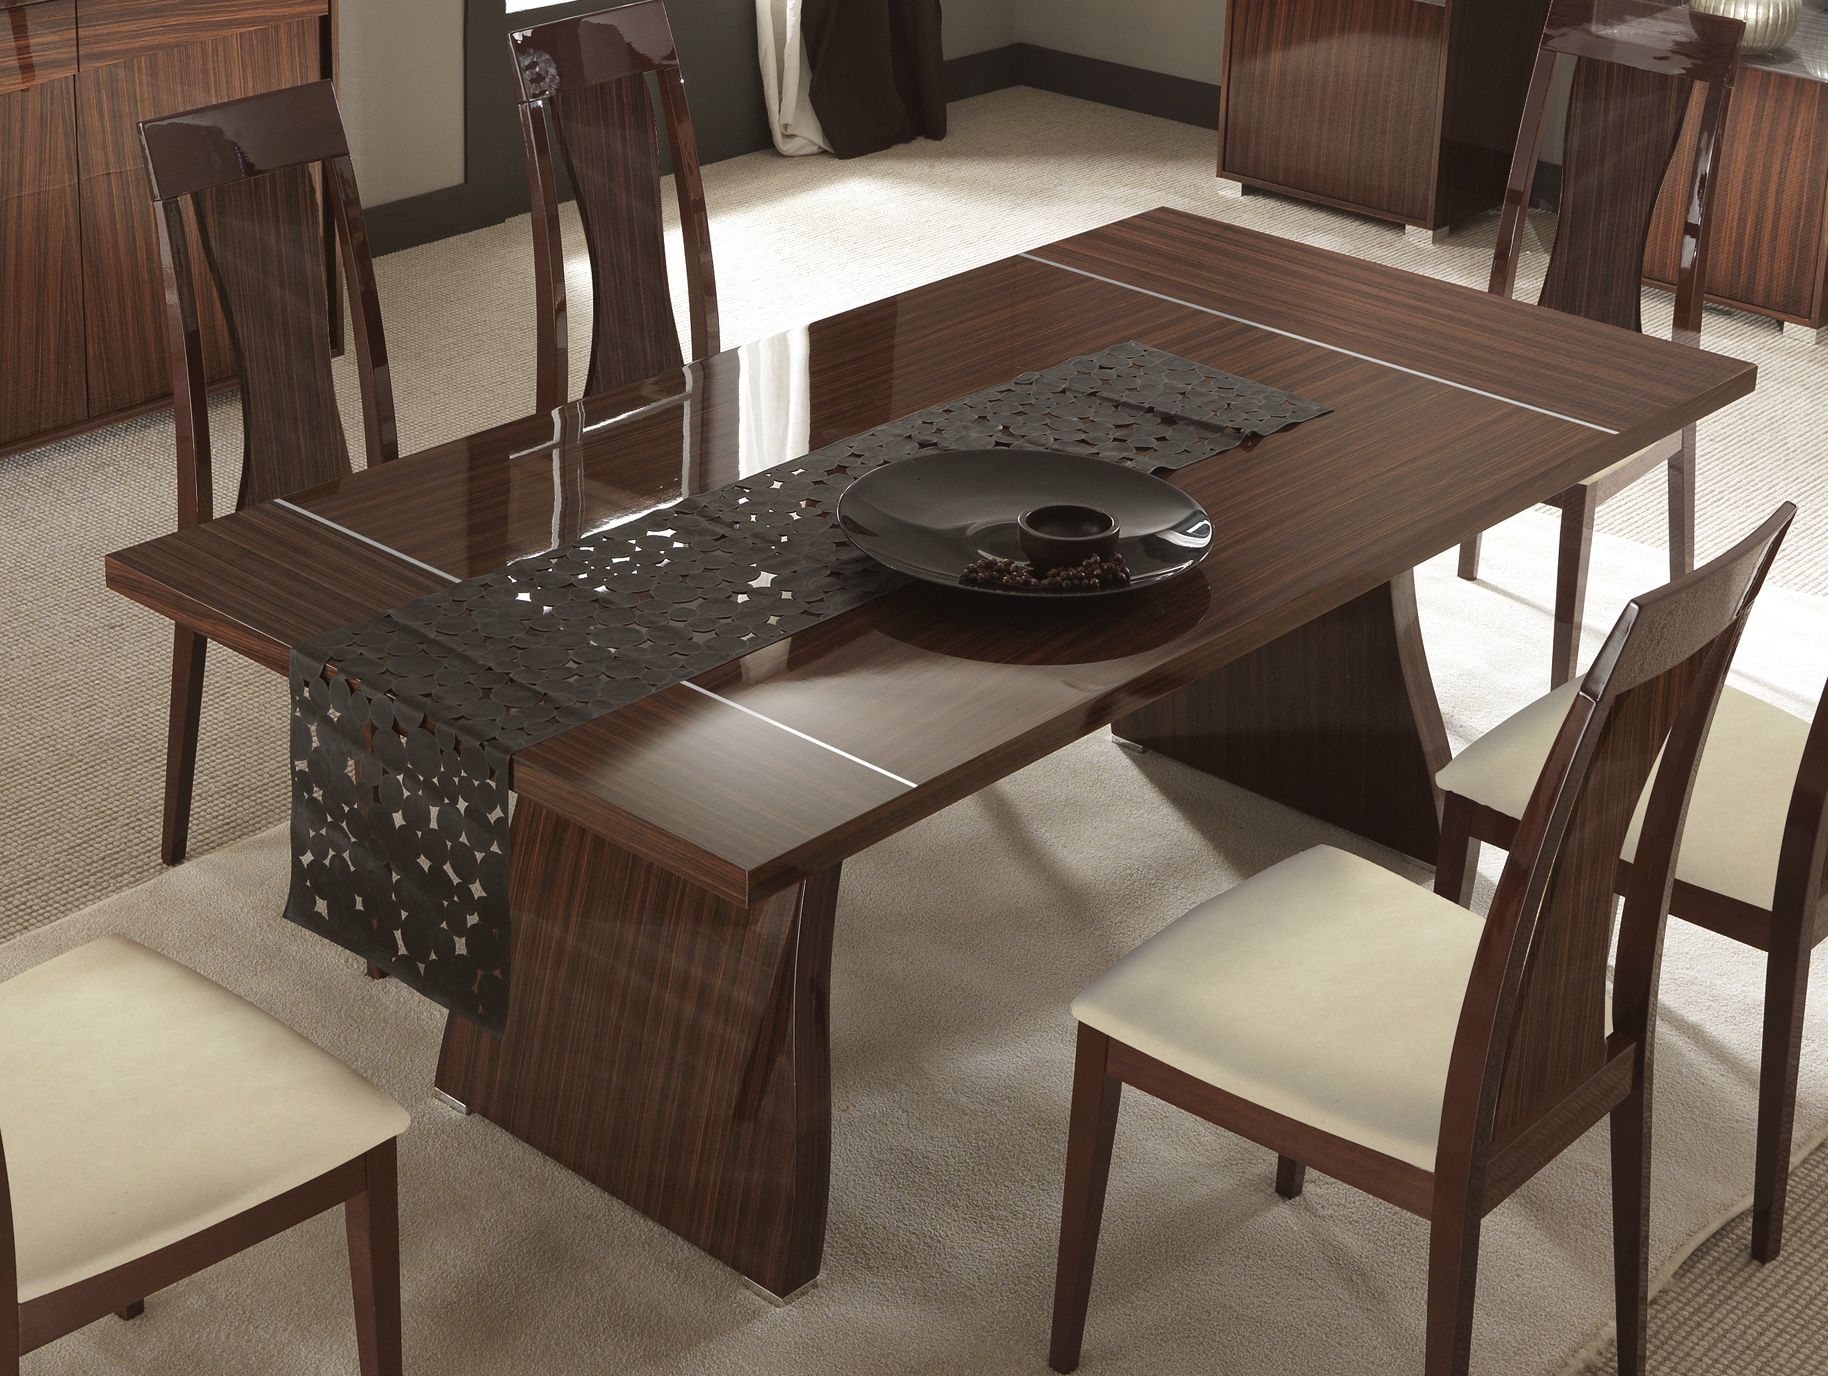 COMEDOR   muebles   Pinterest   Carpentry, Wood furniture and ...